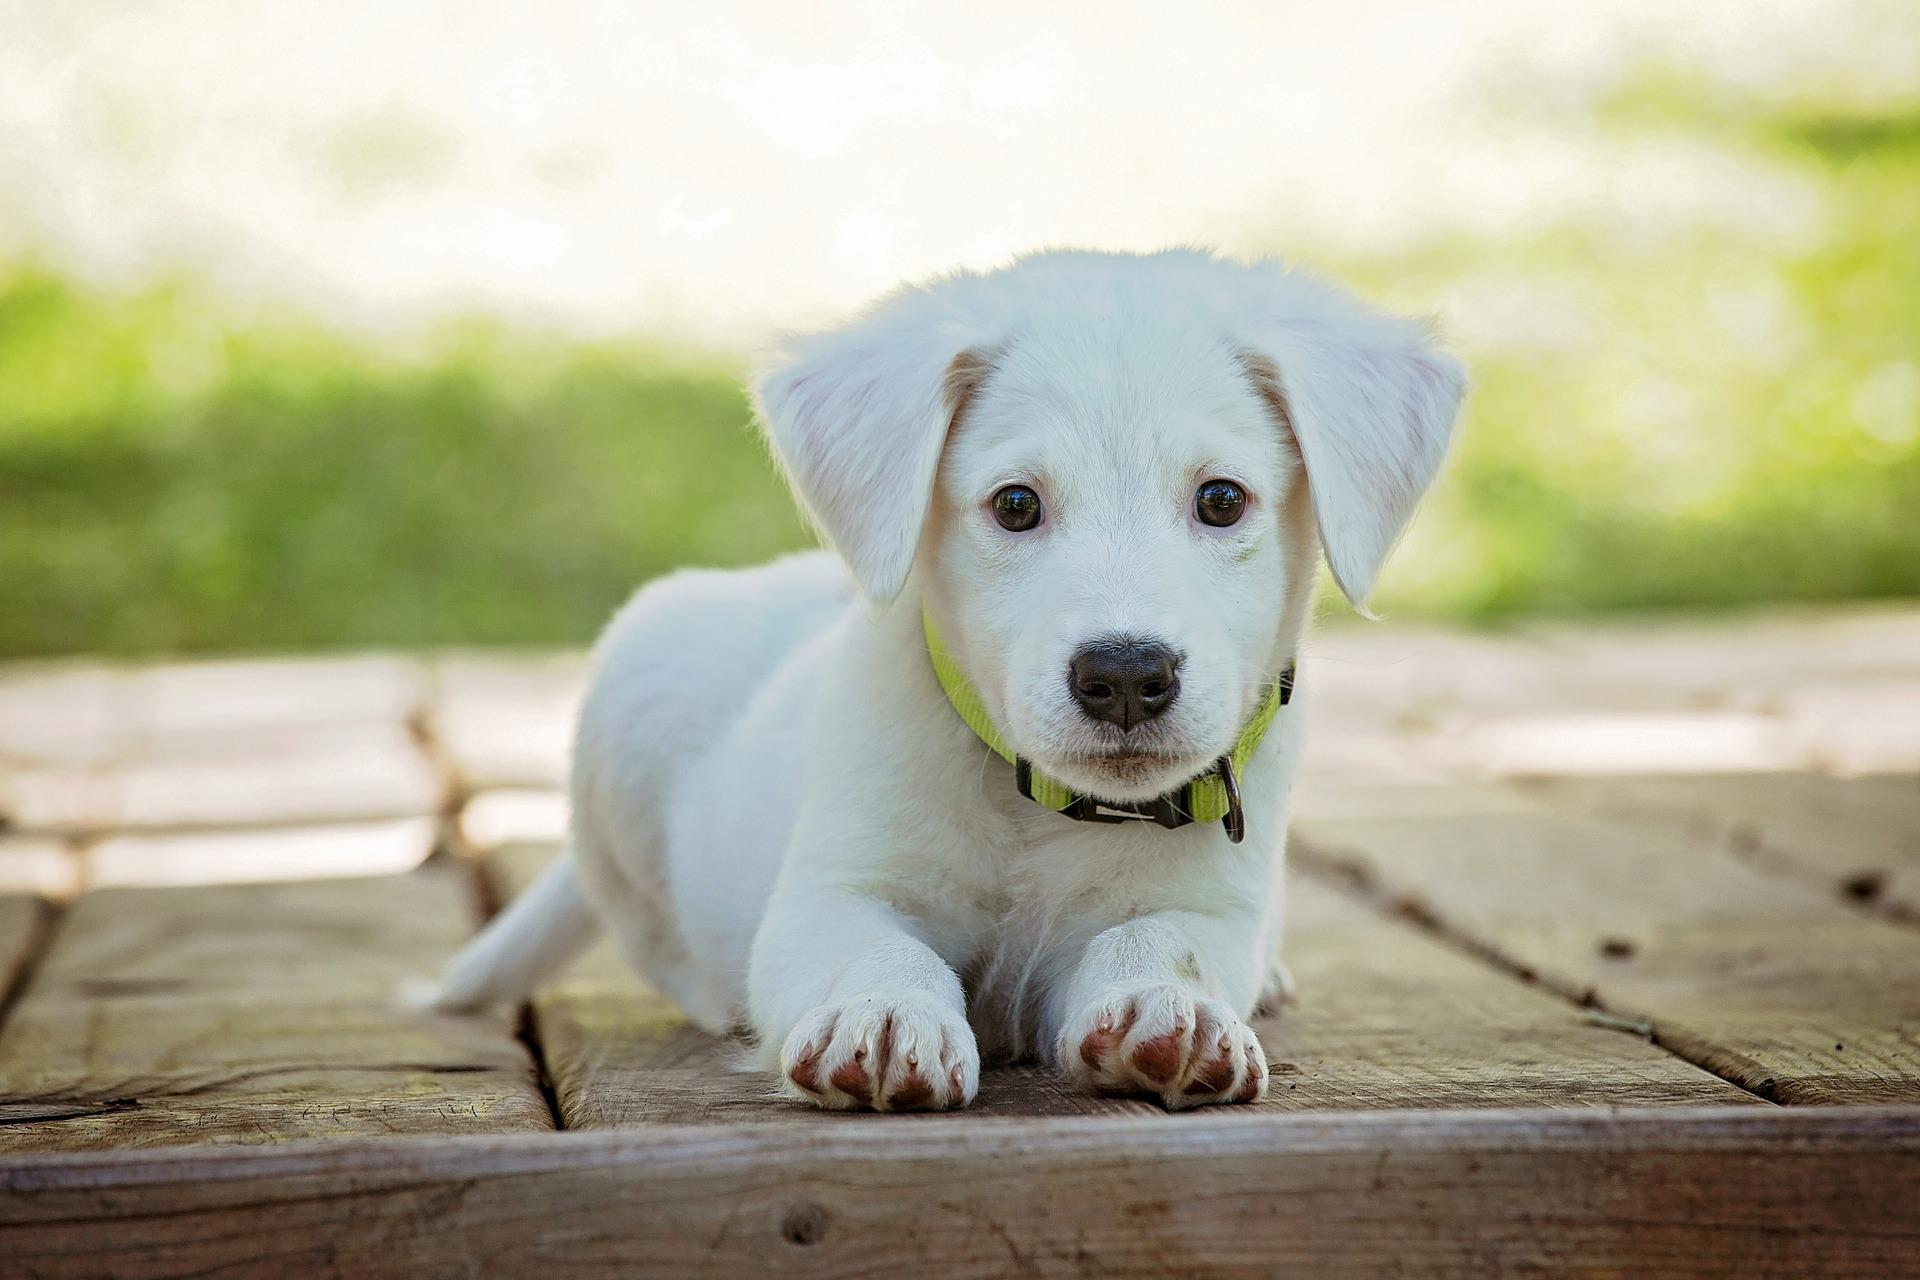 Cute Puppy Wallpaper HD for Android   APK Download 1920x1280